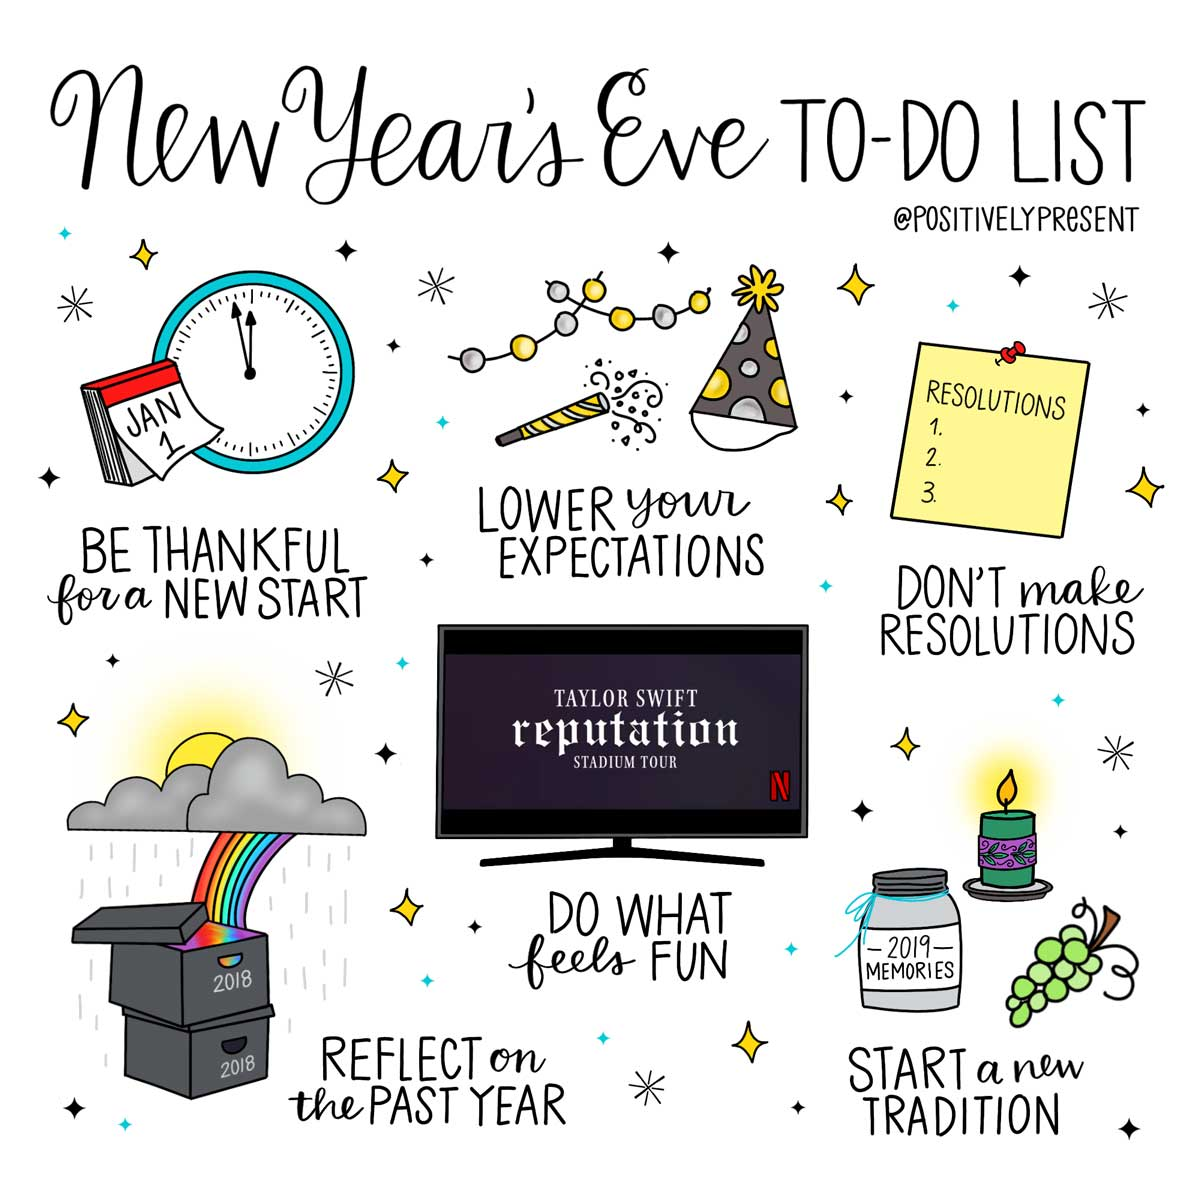 News Year's Eve to-do list illustration.